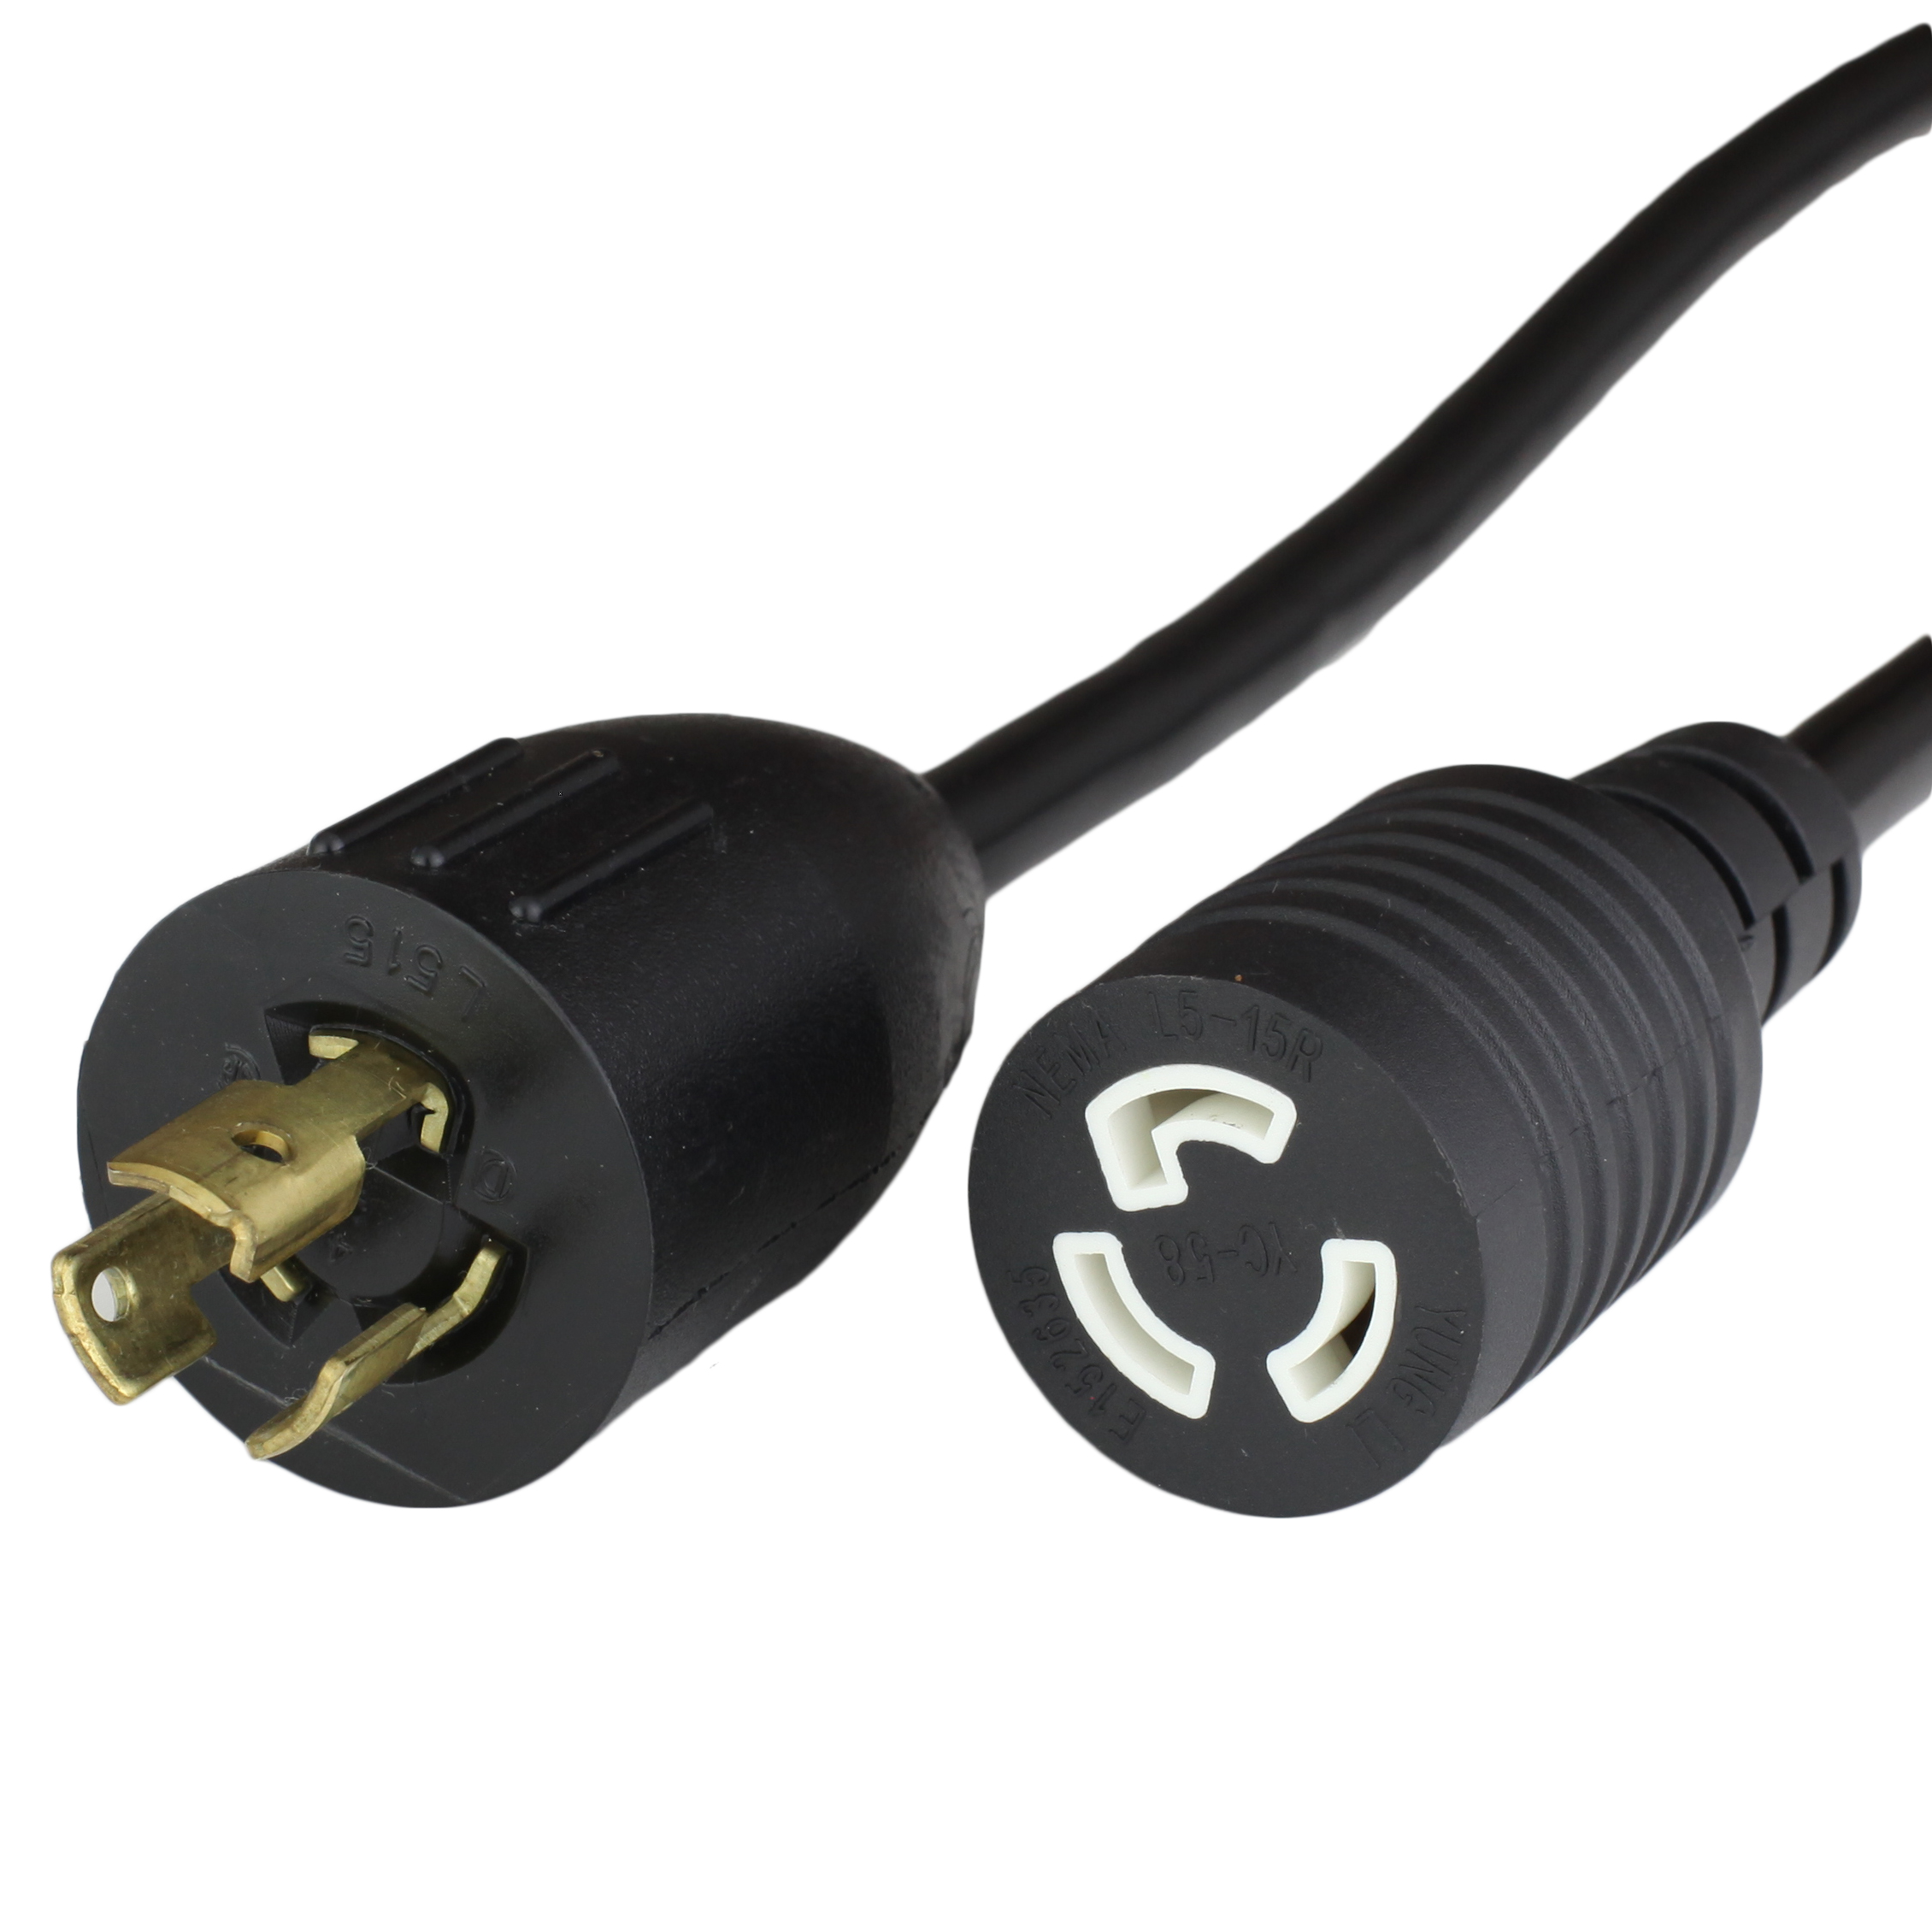 NEMA L5-15 Extension Cords